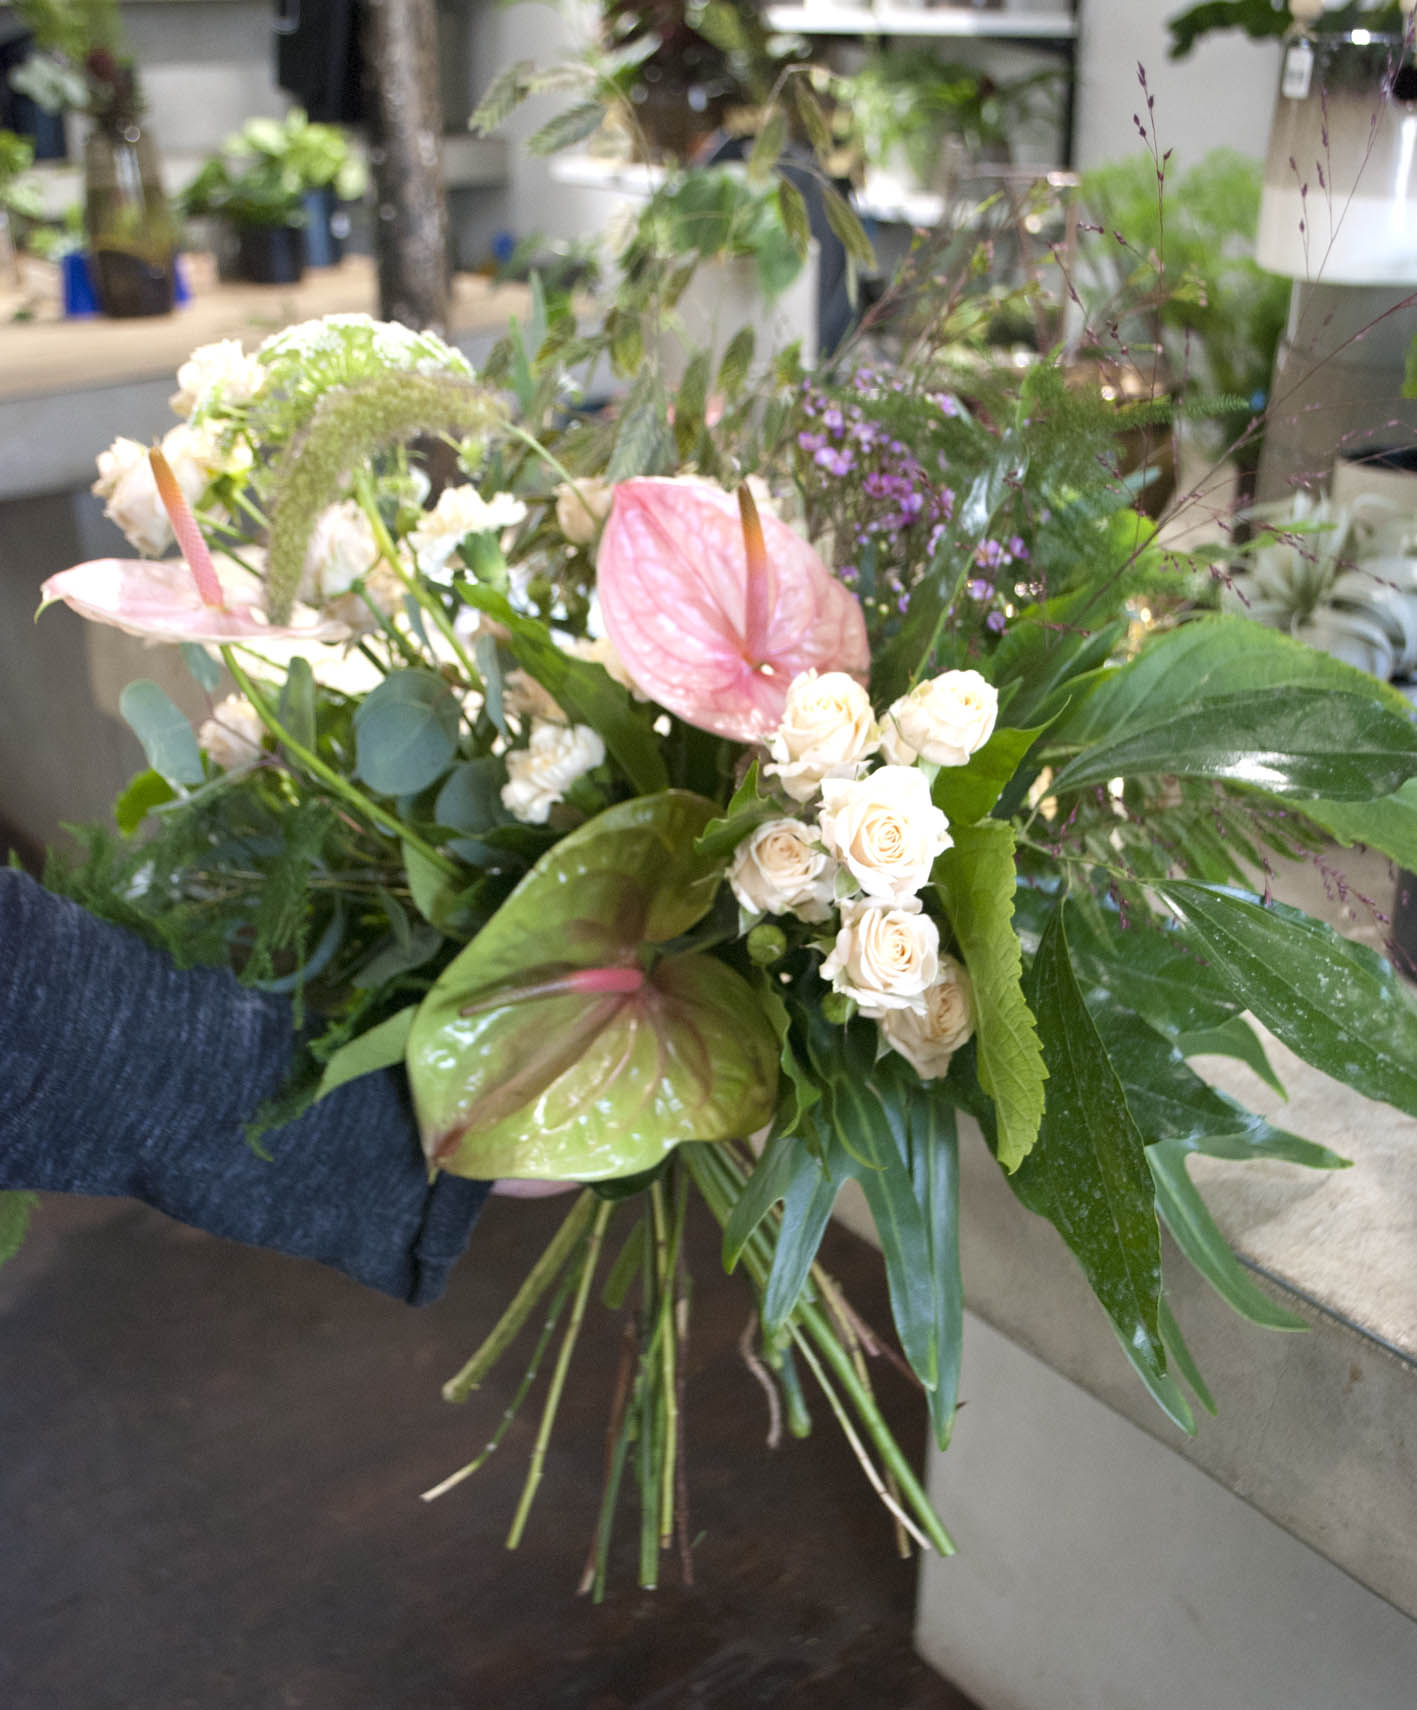 An arrangement by Lucy - one of Grace & Thorn's florists